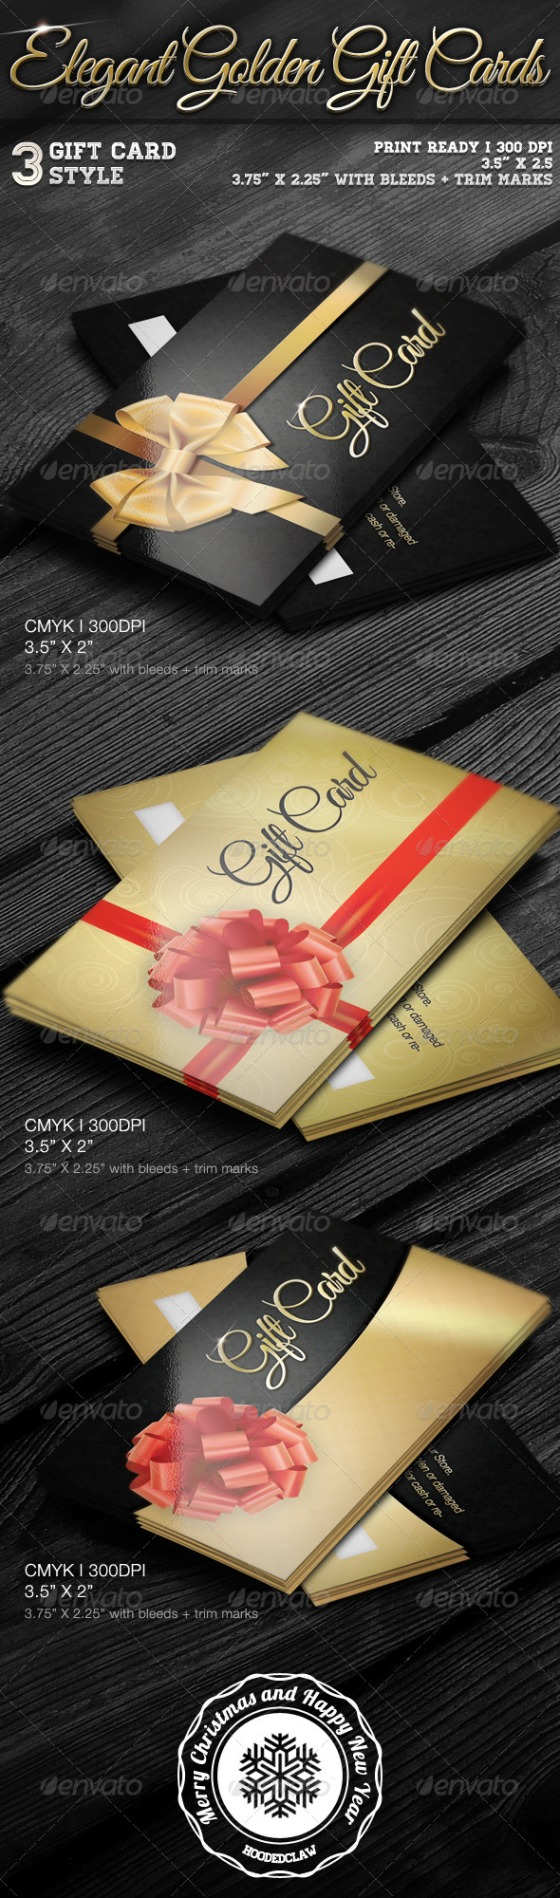 preview gift card